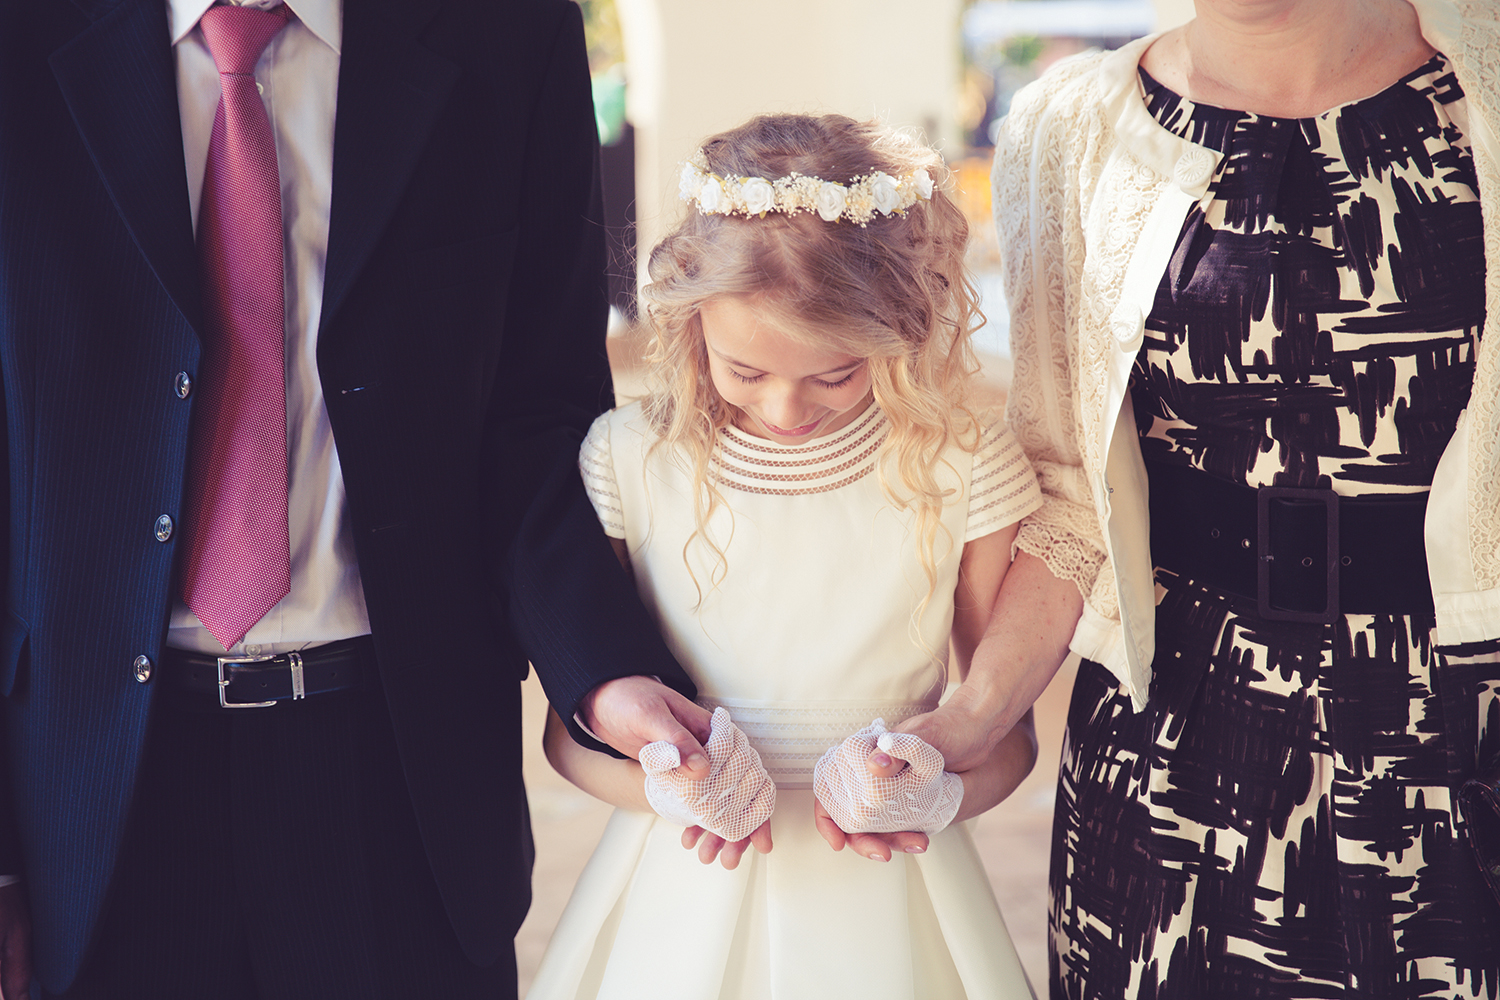 Five tips for celebrating First Communion without stress